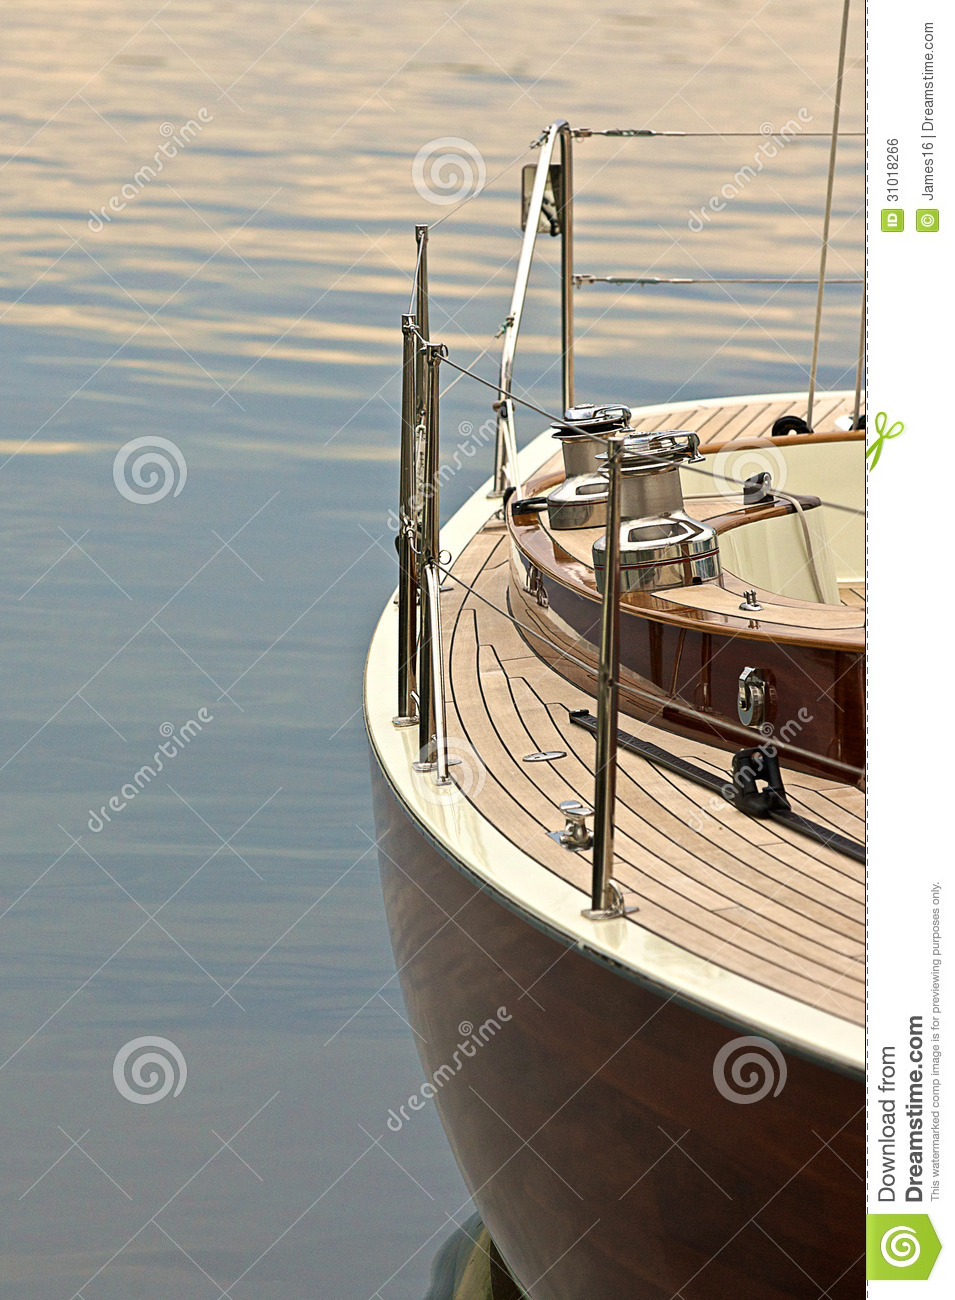 Sailboat in Harbour